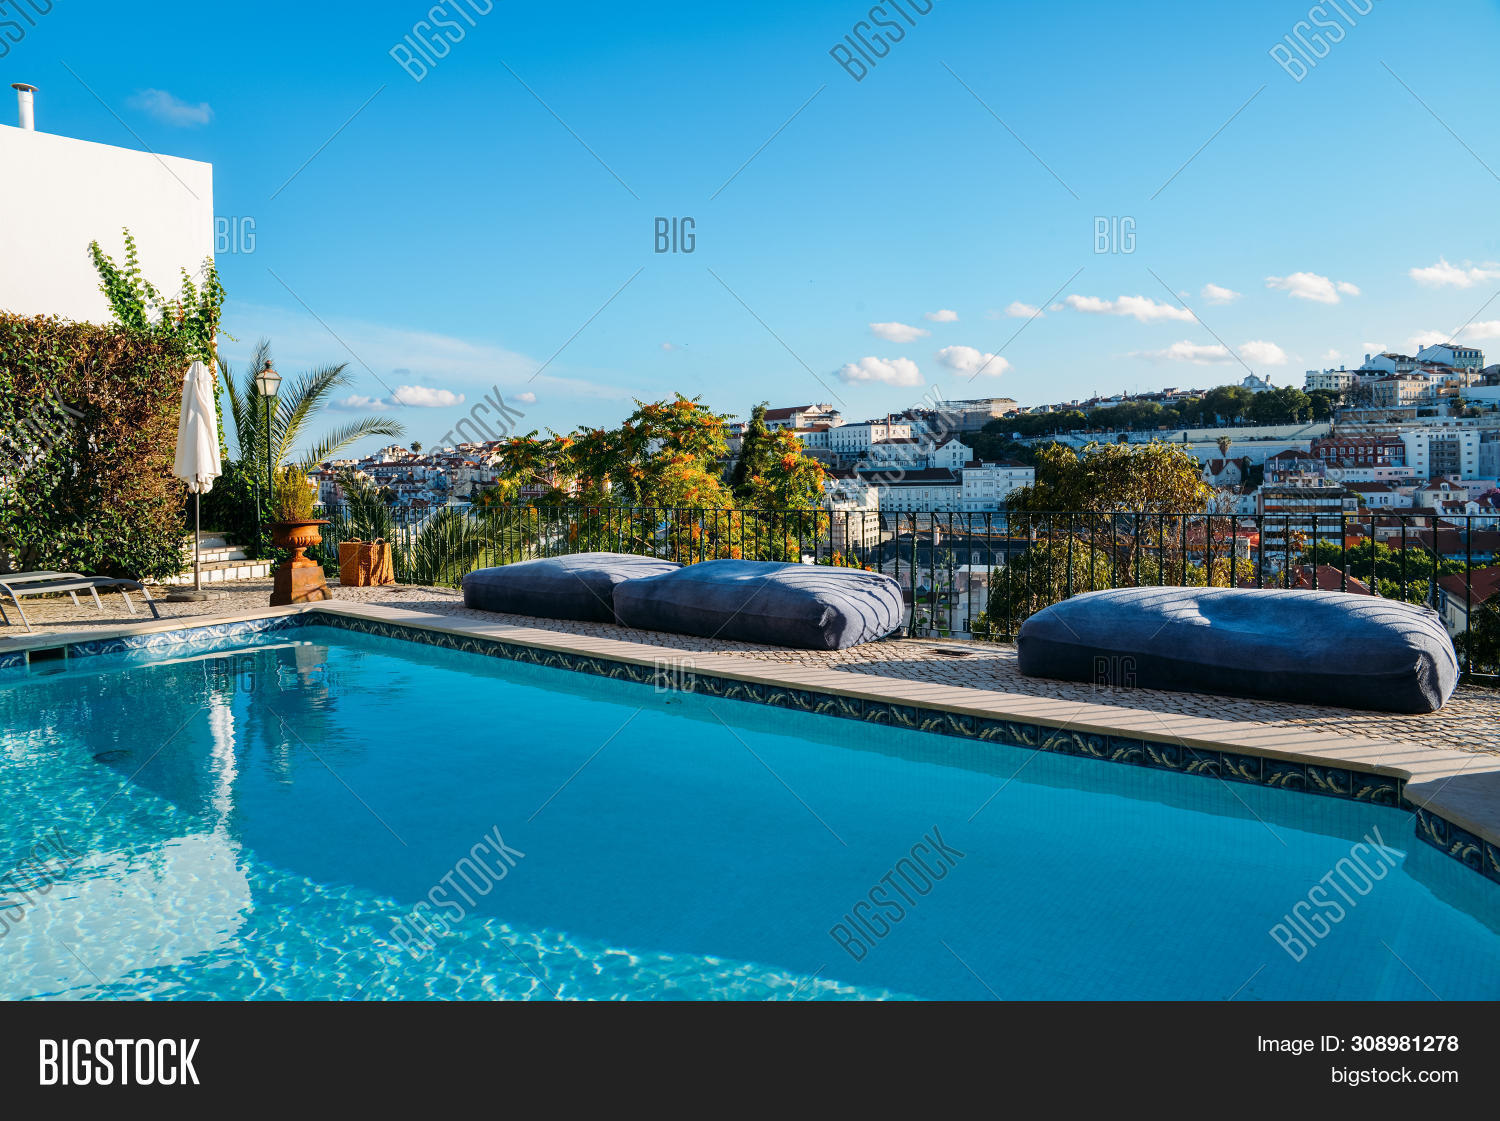 Swimming Pool On Roof Image Photo